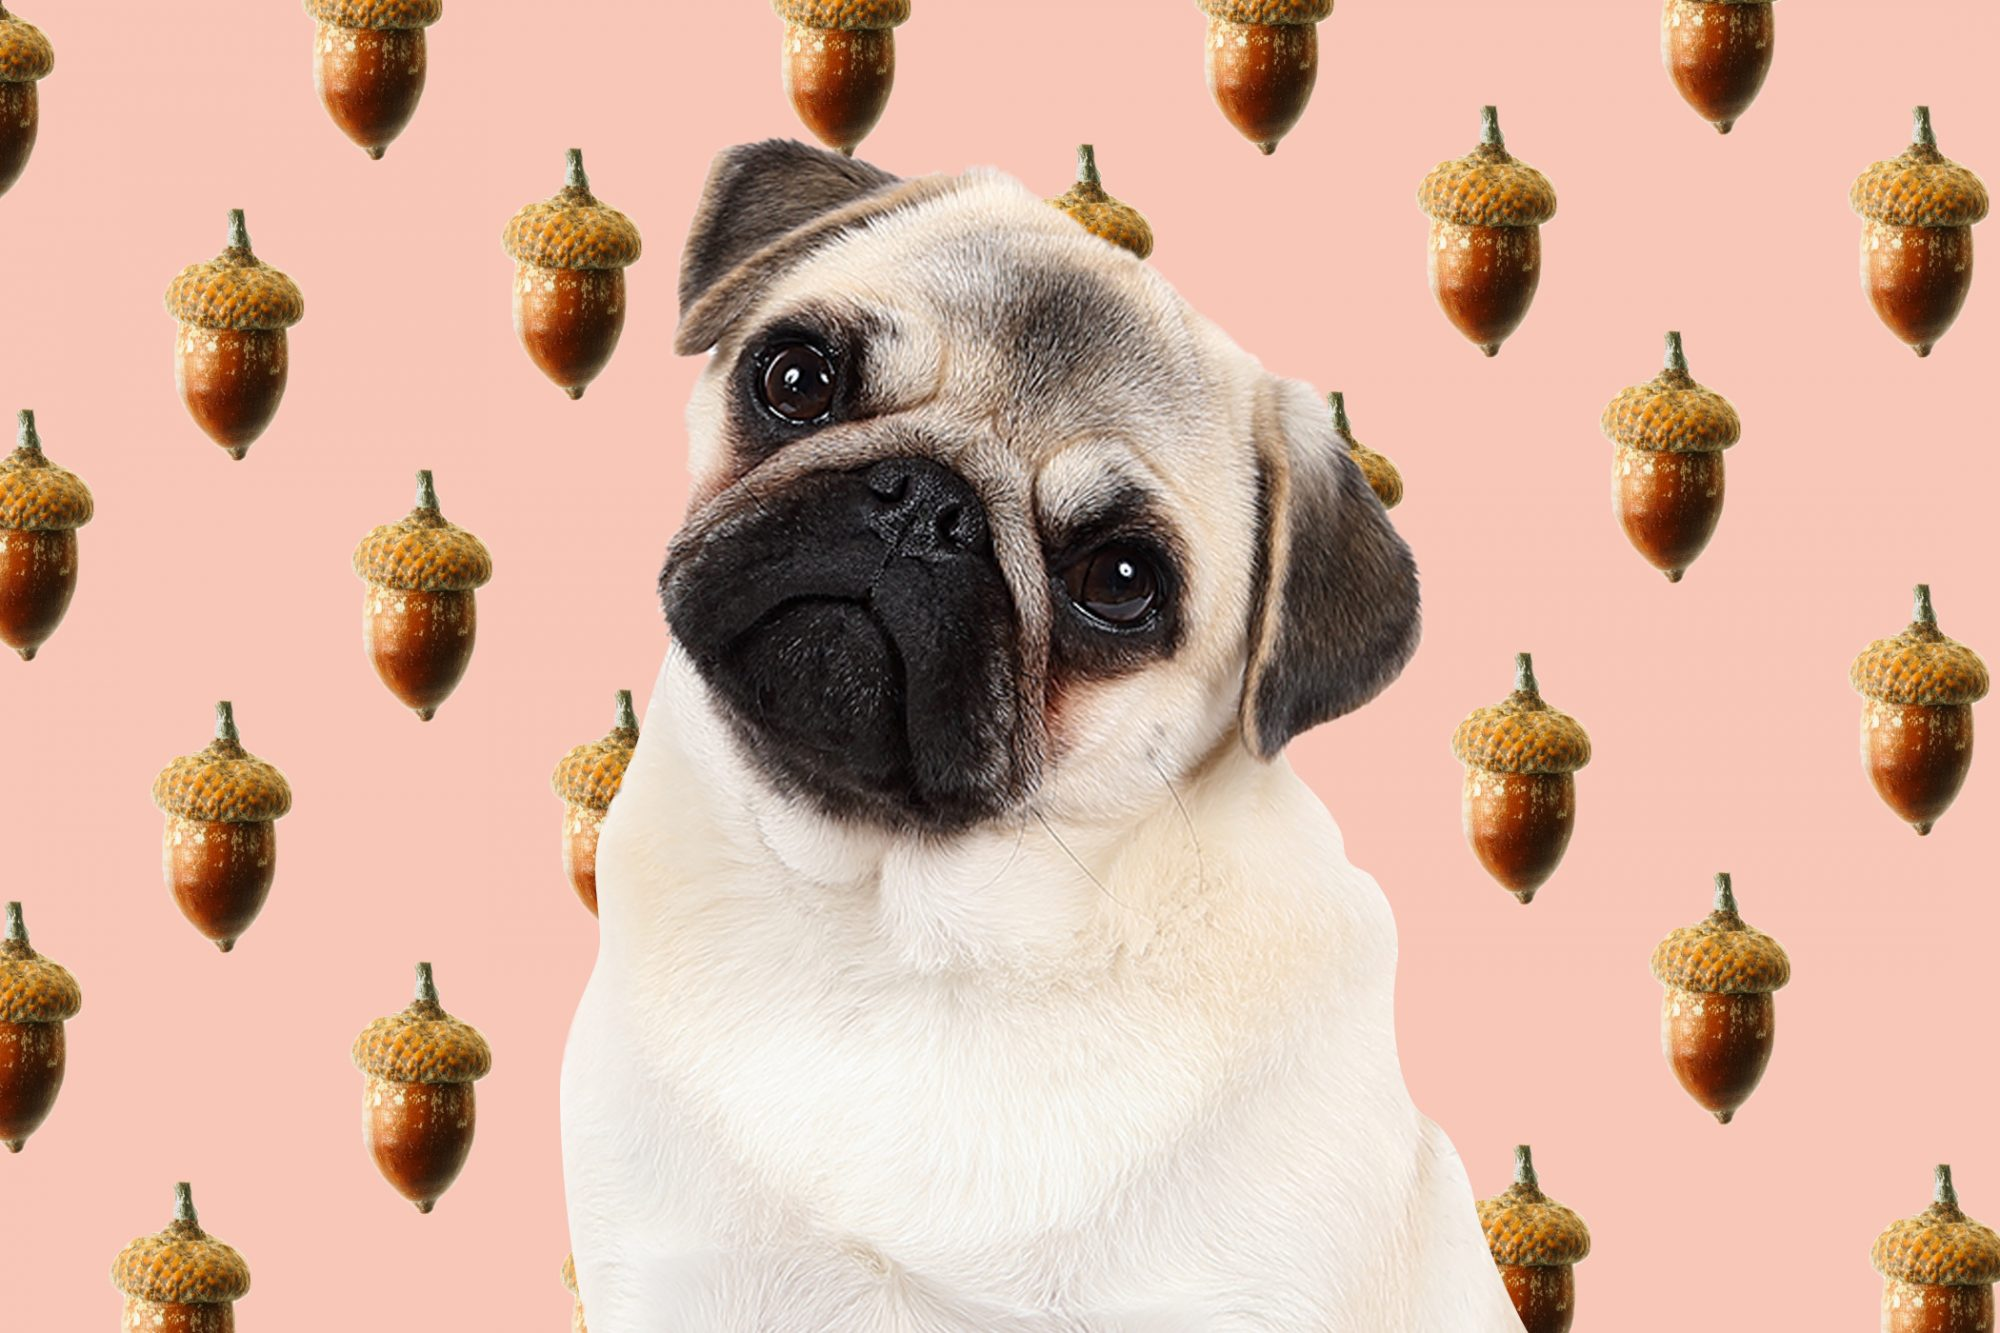 pug dog in front of a background with an acorn pattern